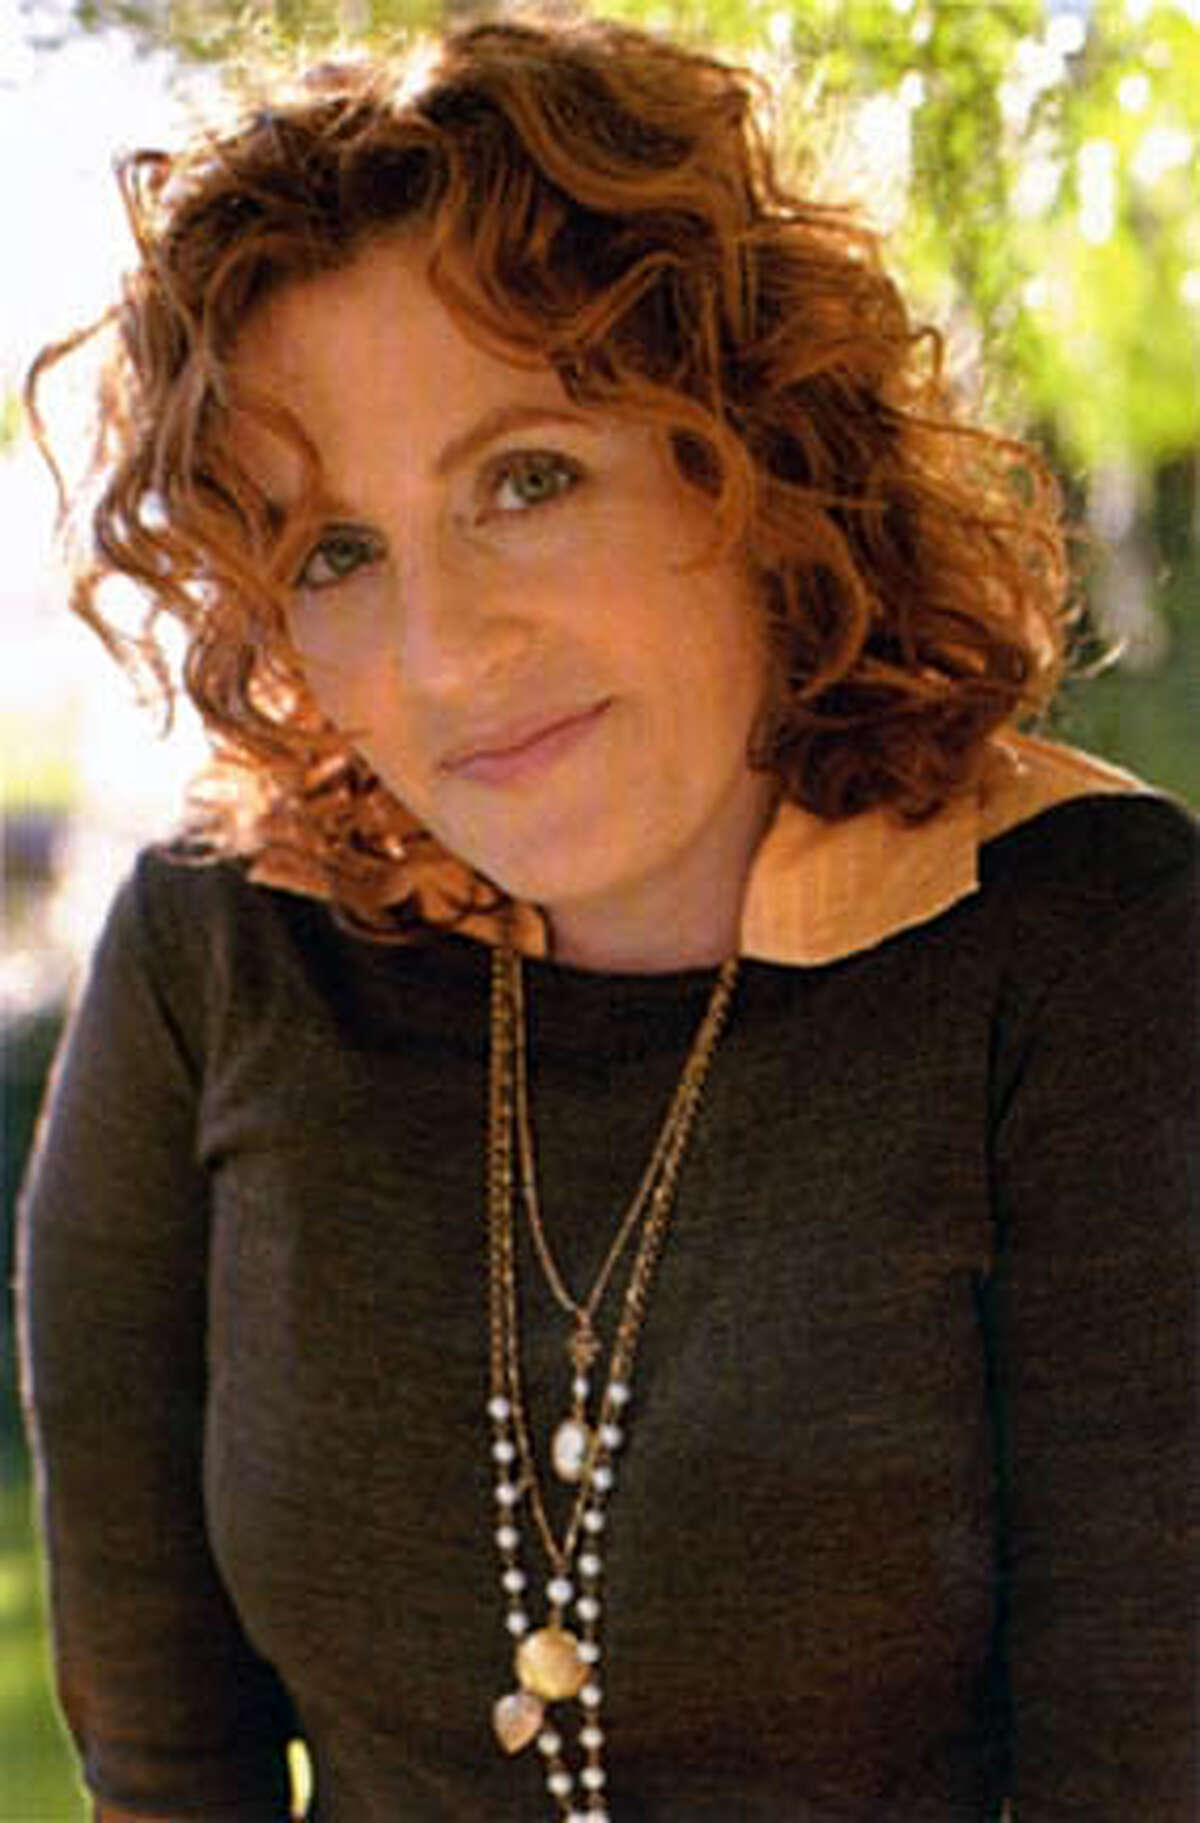 """Ayelet Waldman, author of """"Love and Other Impossible Pursuits"""" FOR USE WITH BOOK REVIEW ONLY"""